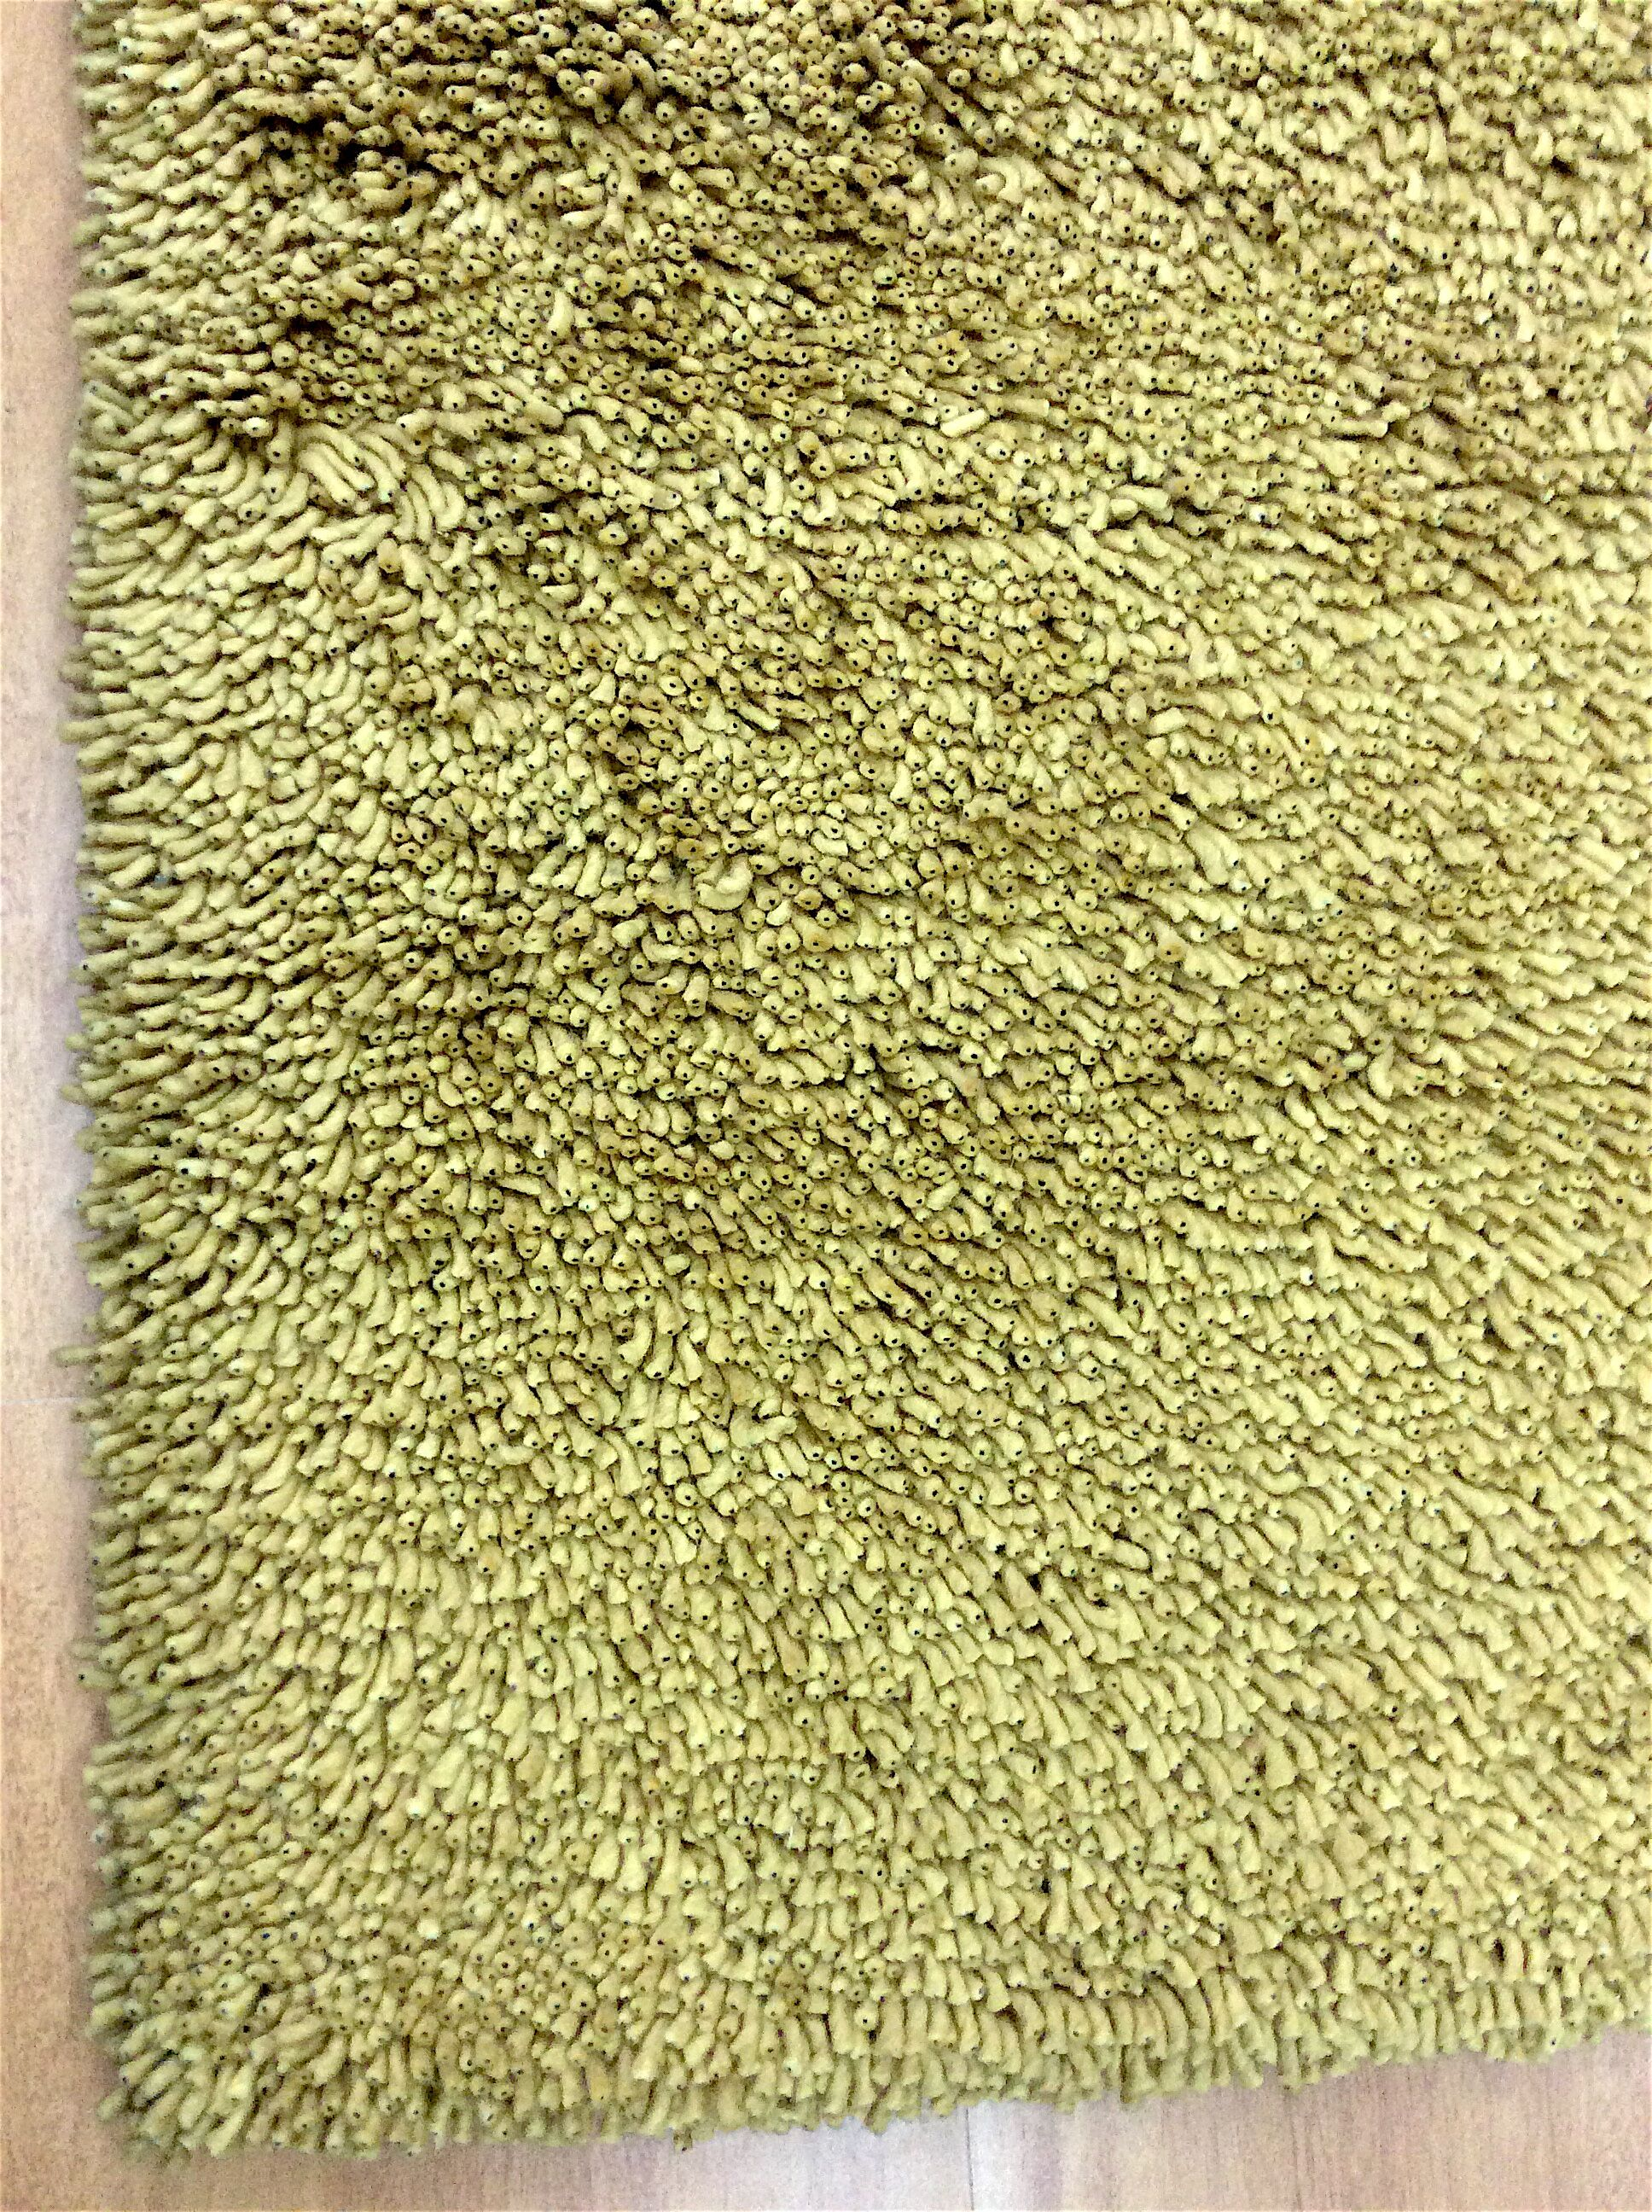 Shag Eyeball Woolen Hand Knotted Green Area Rug Rug Size: Round 10'